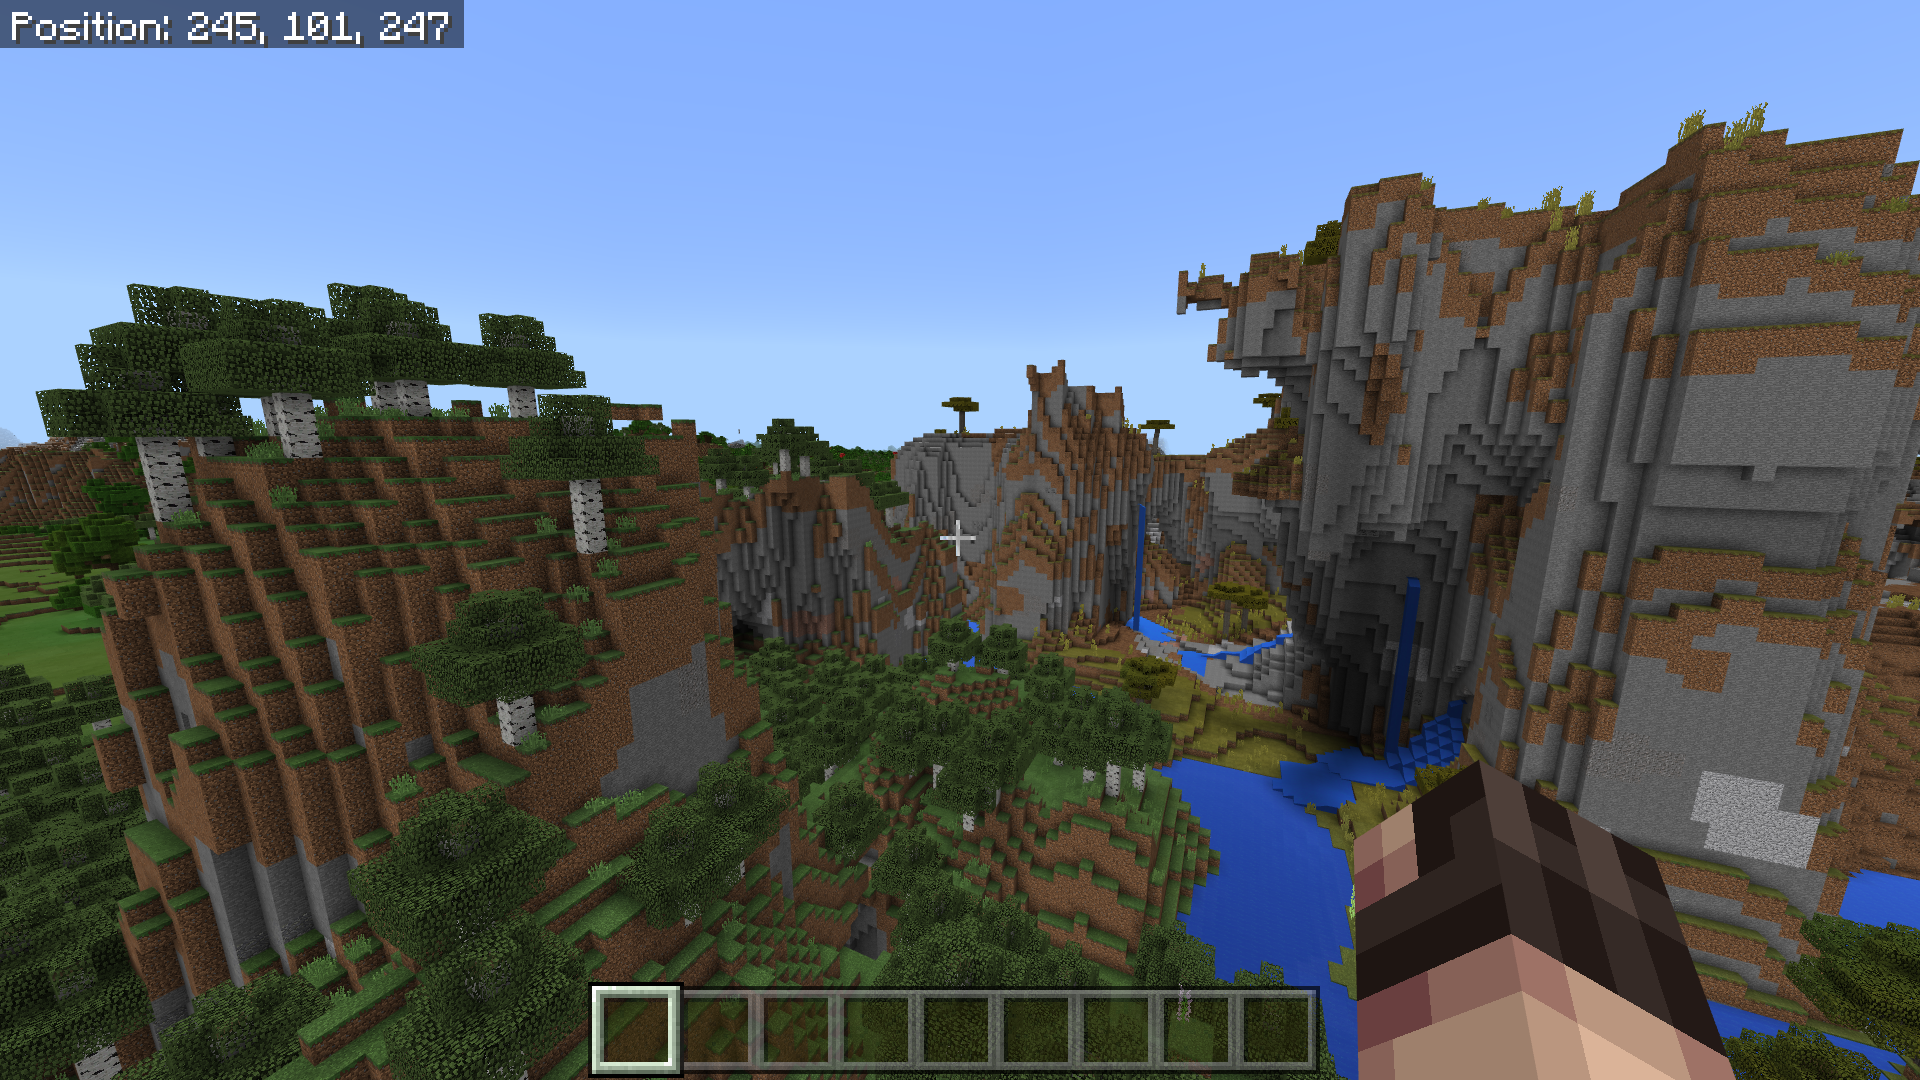 MCPE-29698] Birch Forest M biome does not generate tall